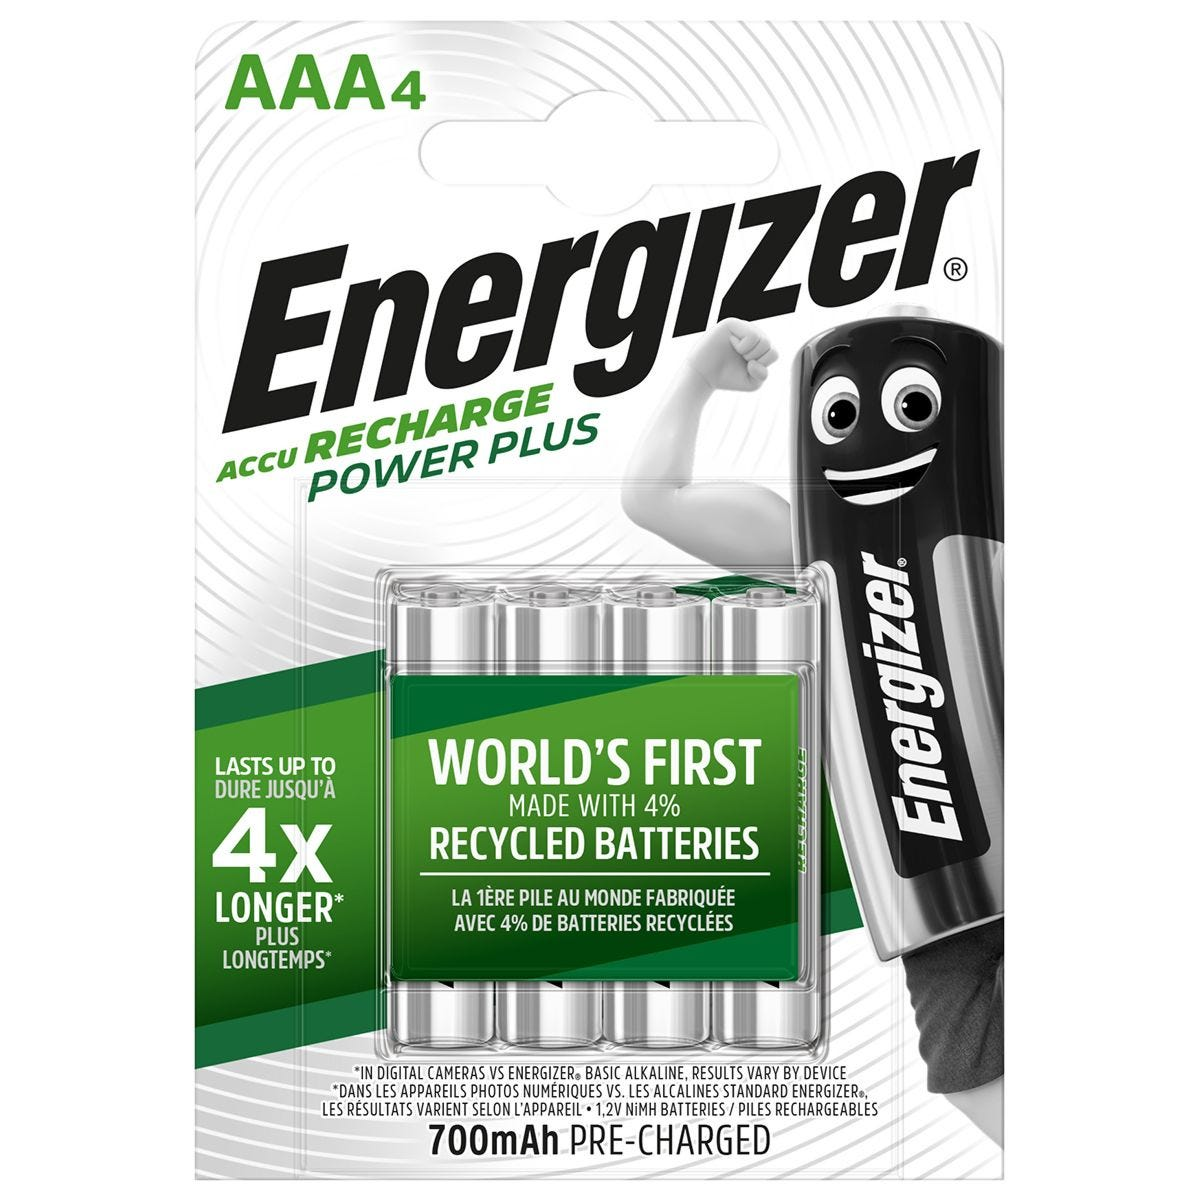 Energizer Rechargeable Batteries AAA - 4 Pack